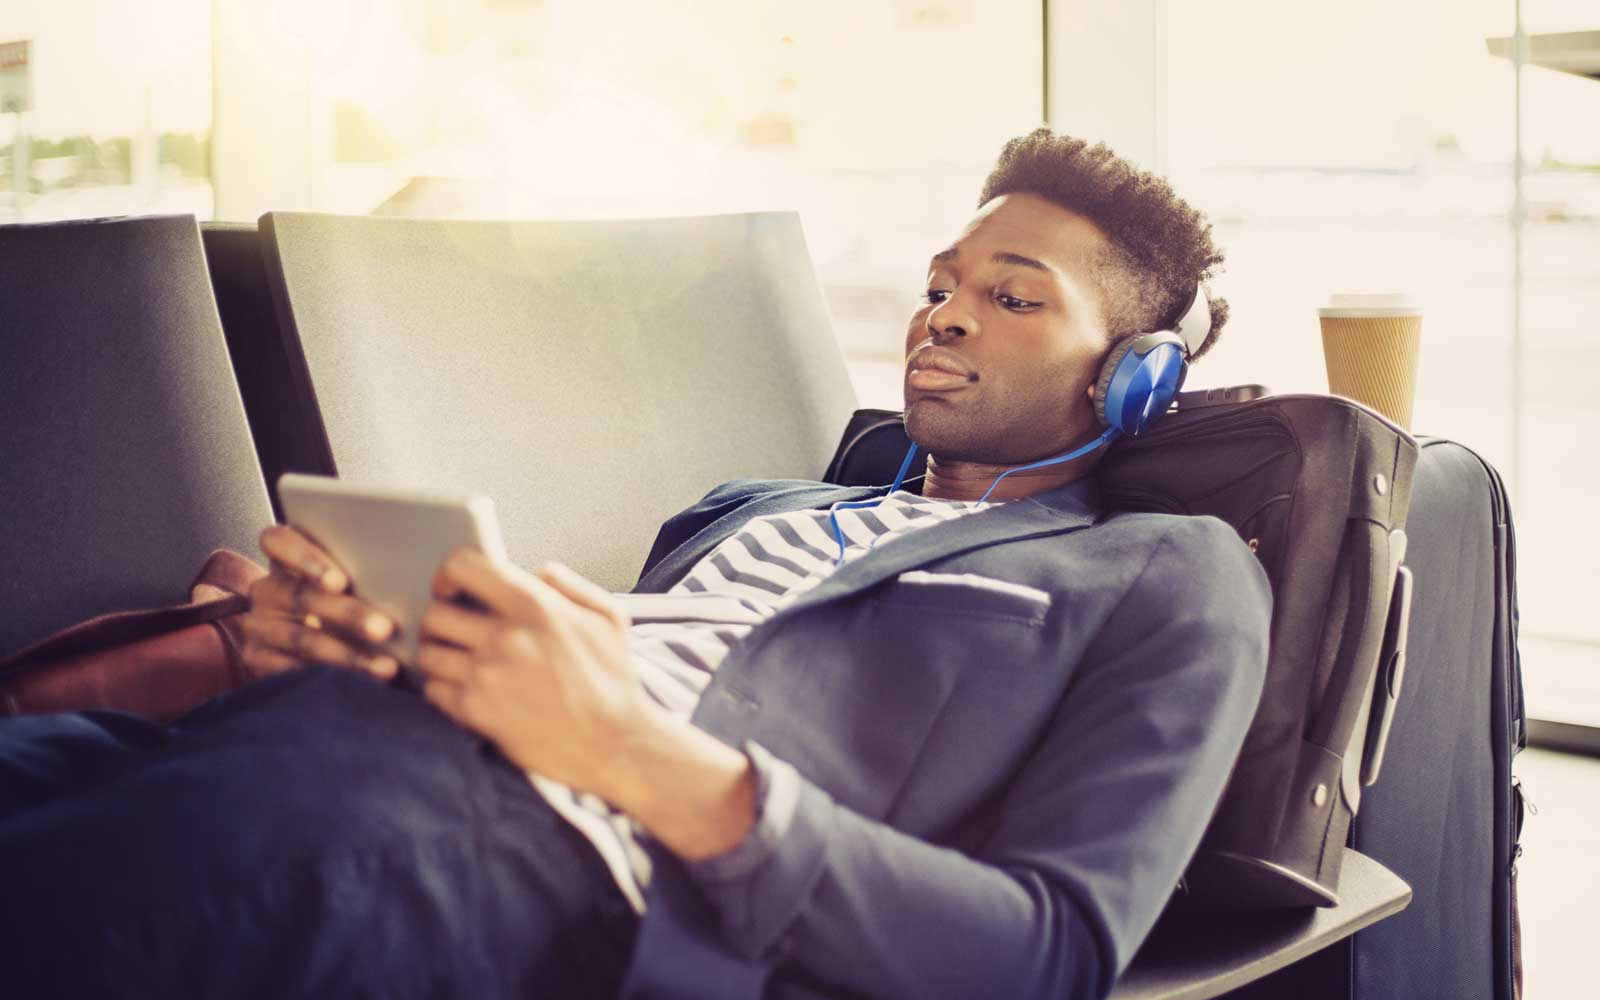 13 Travel-friendly Headphones That Will Make Any Trip More Enjoyable